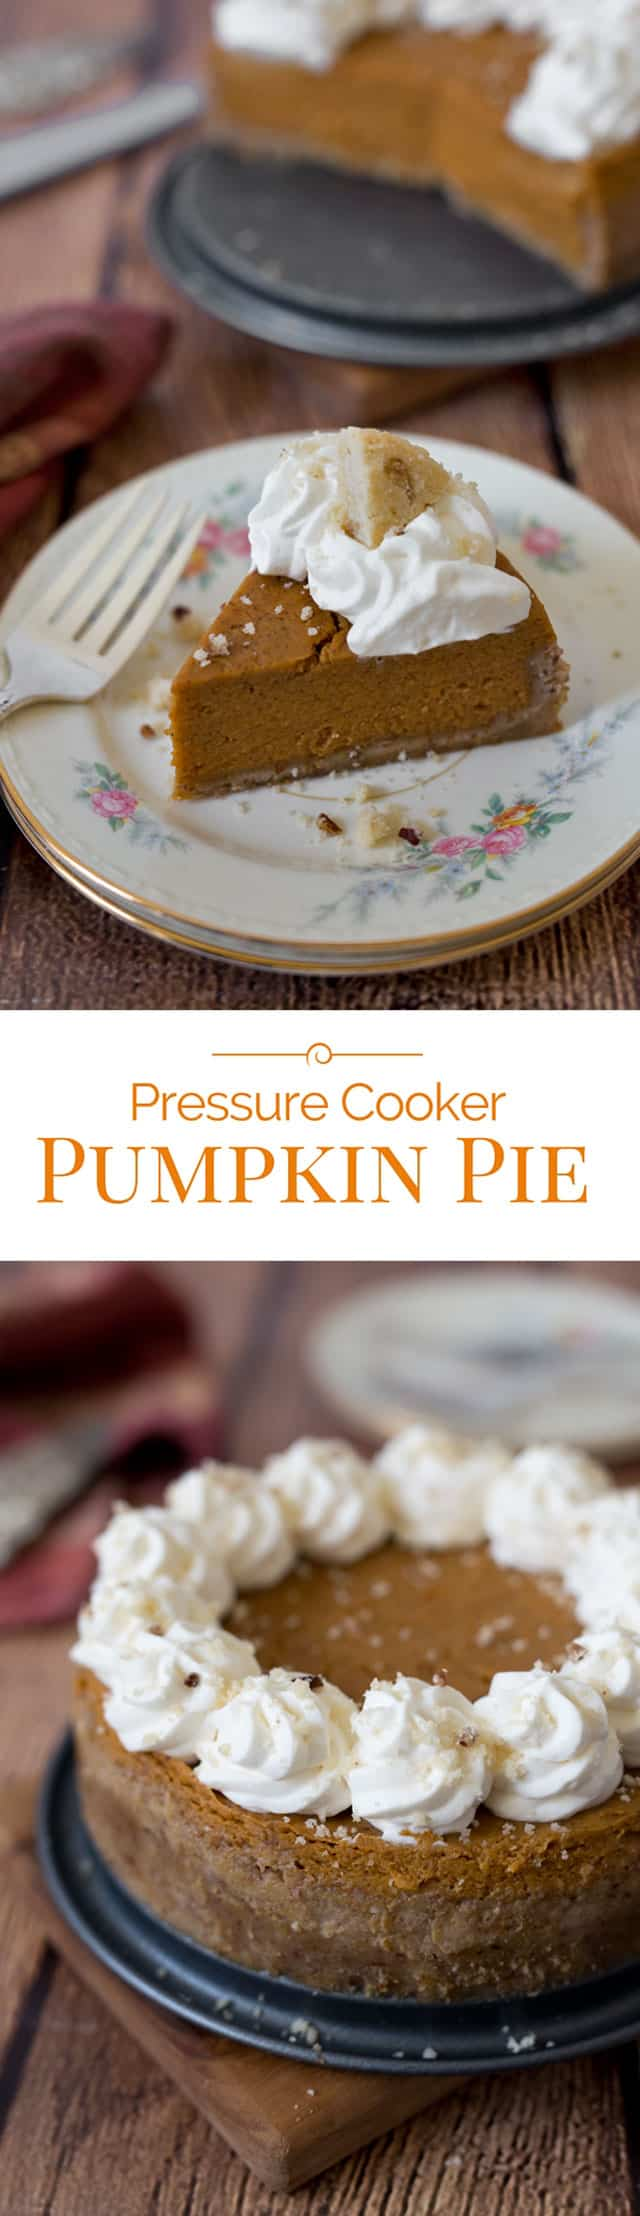 Pressure-Cooker-Pumpkin-Pie-Collage-2-Pressure-Cooking-Today